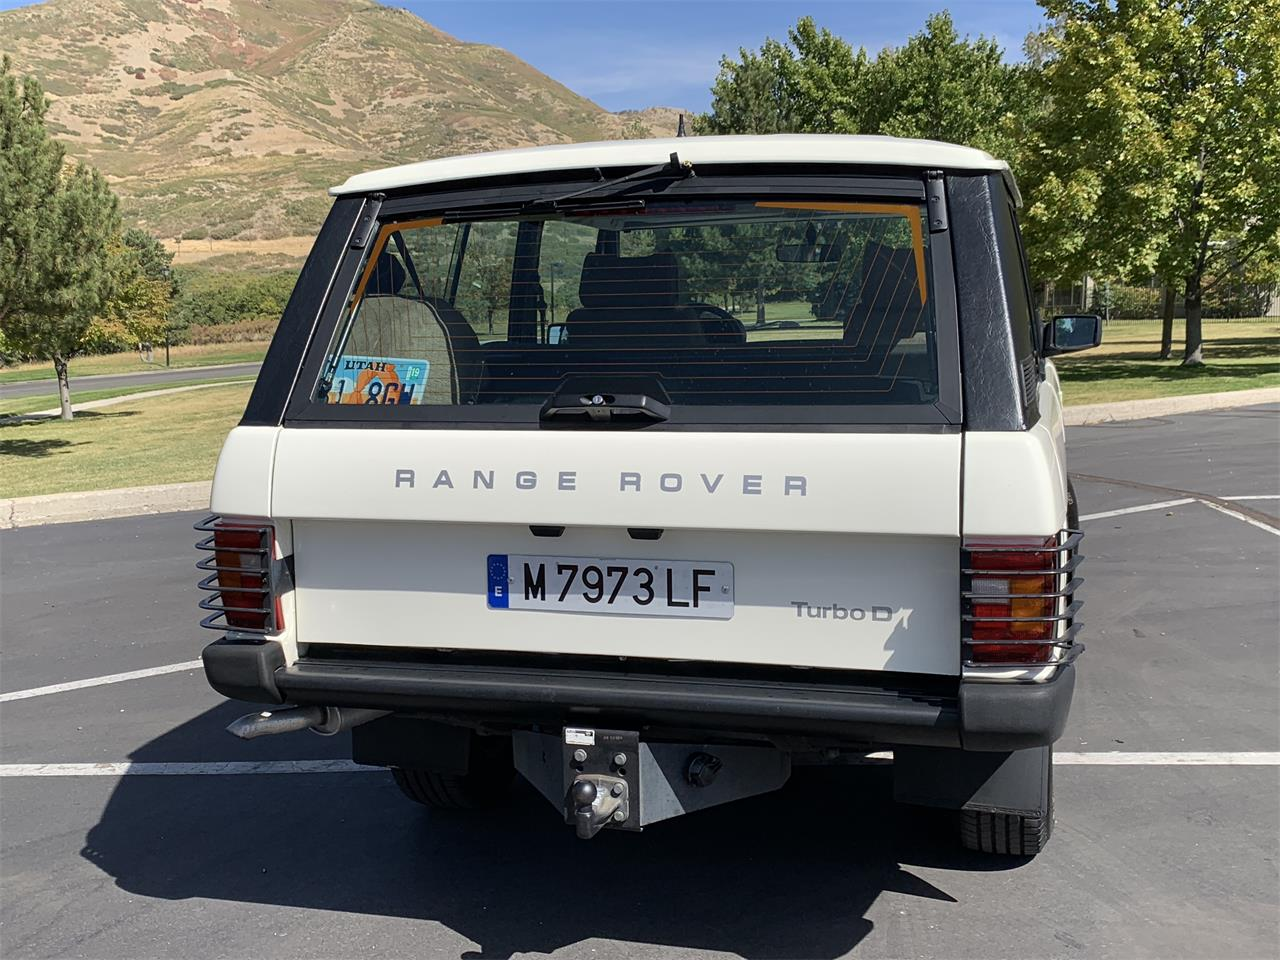 1990 Land Rover Range Rover for sale in Boise, ID – photo 8